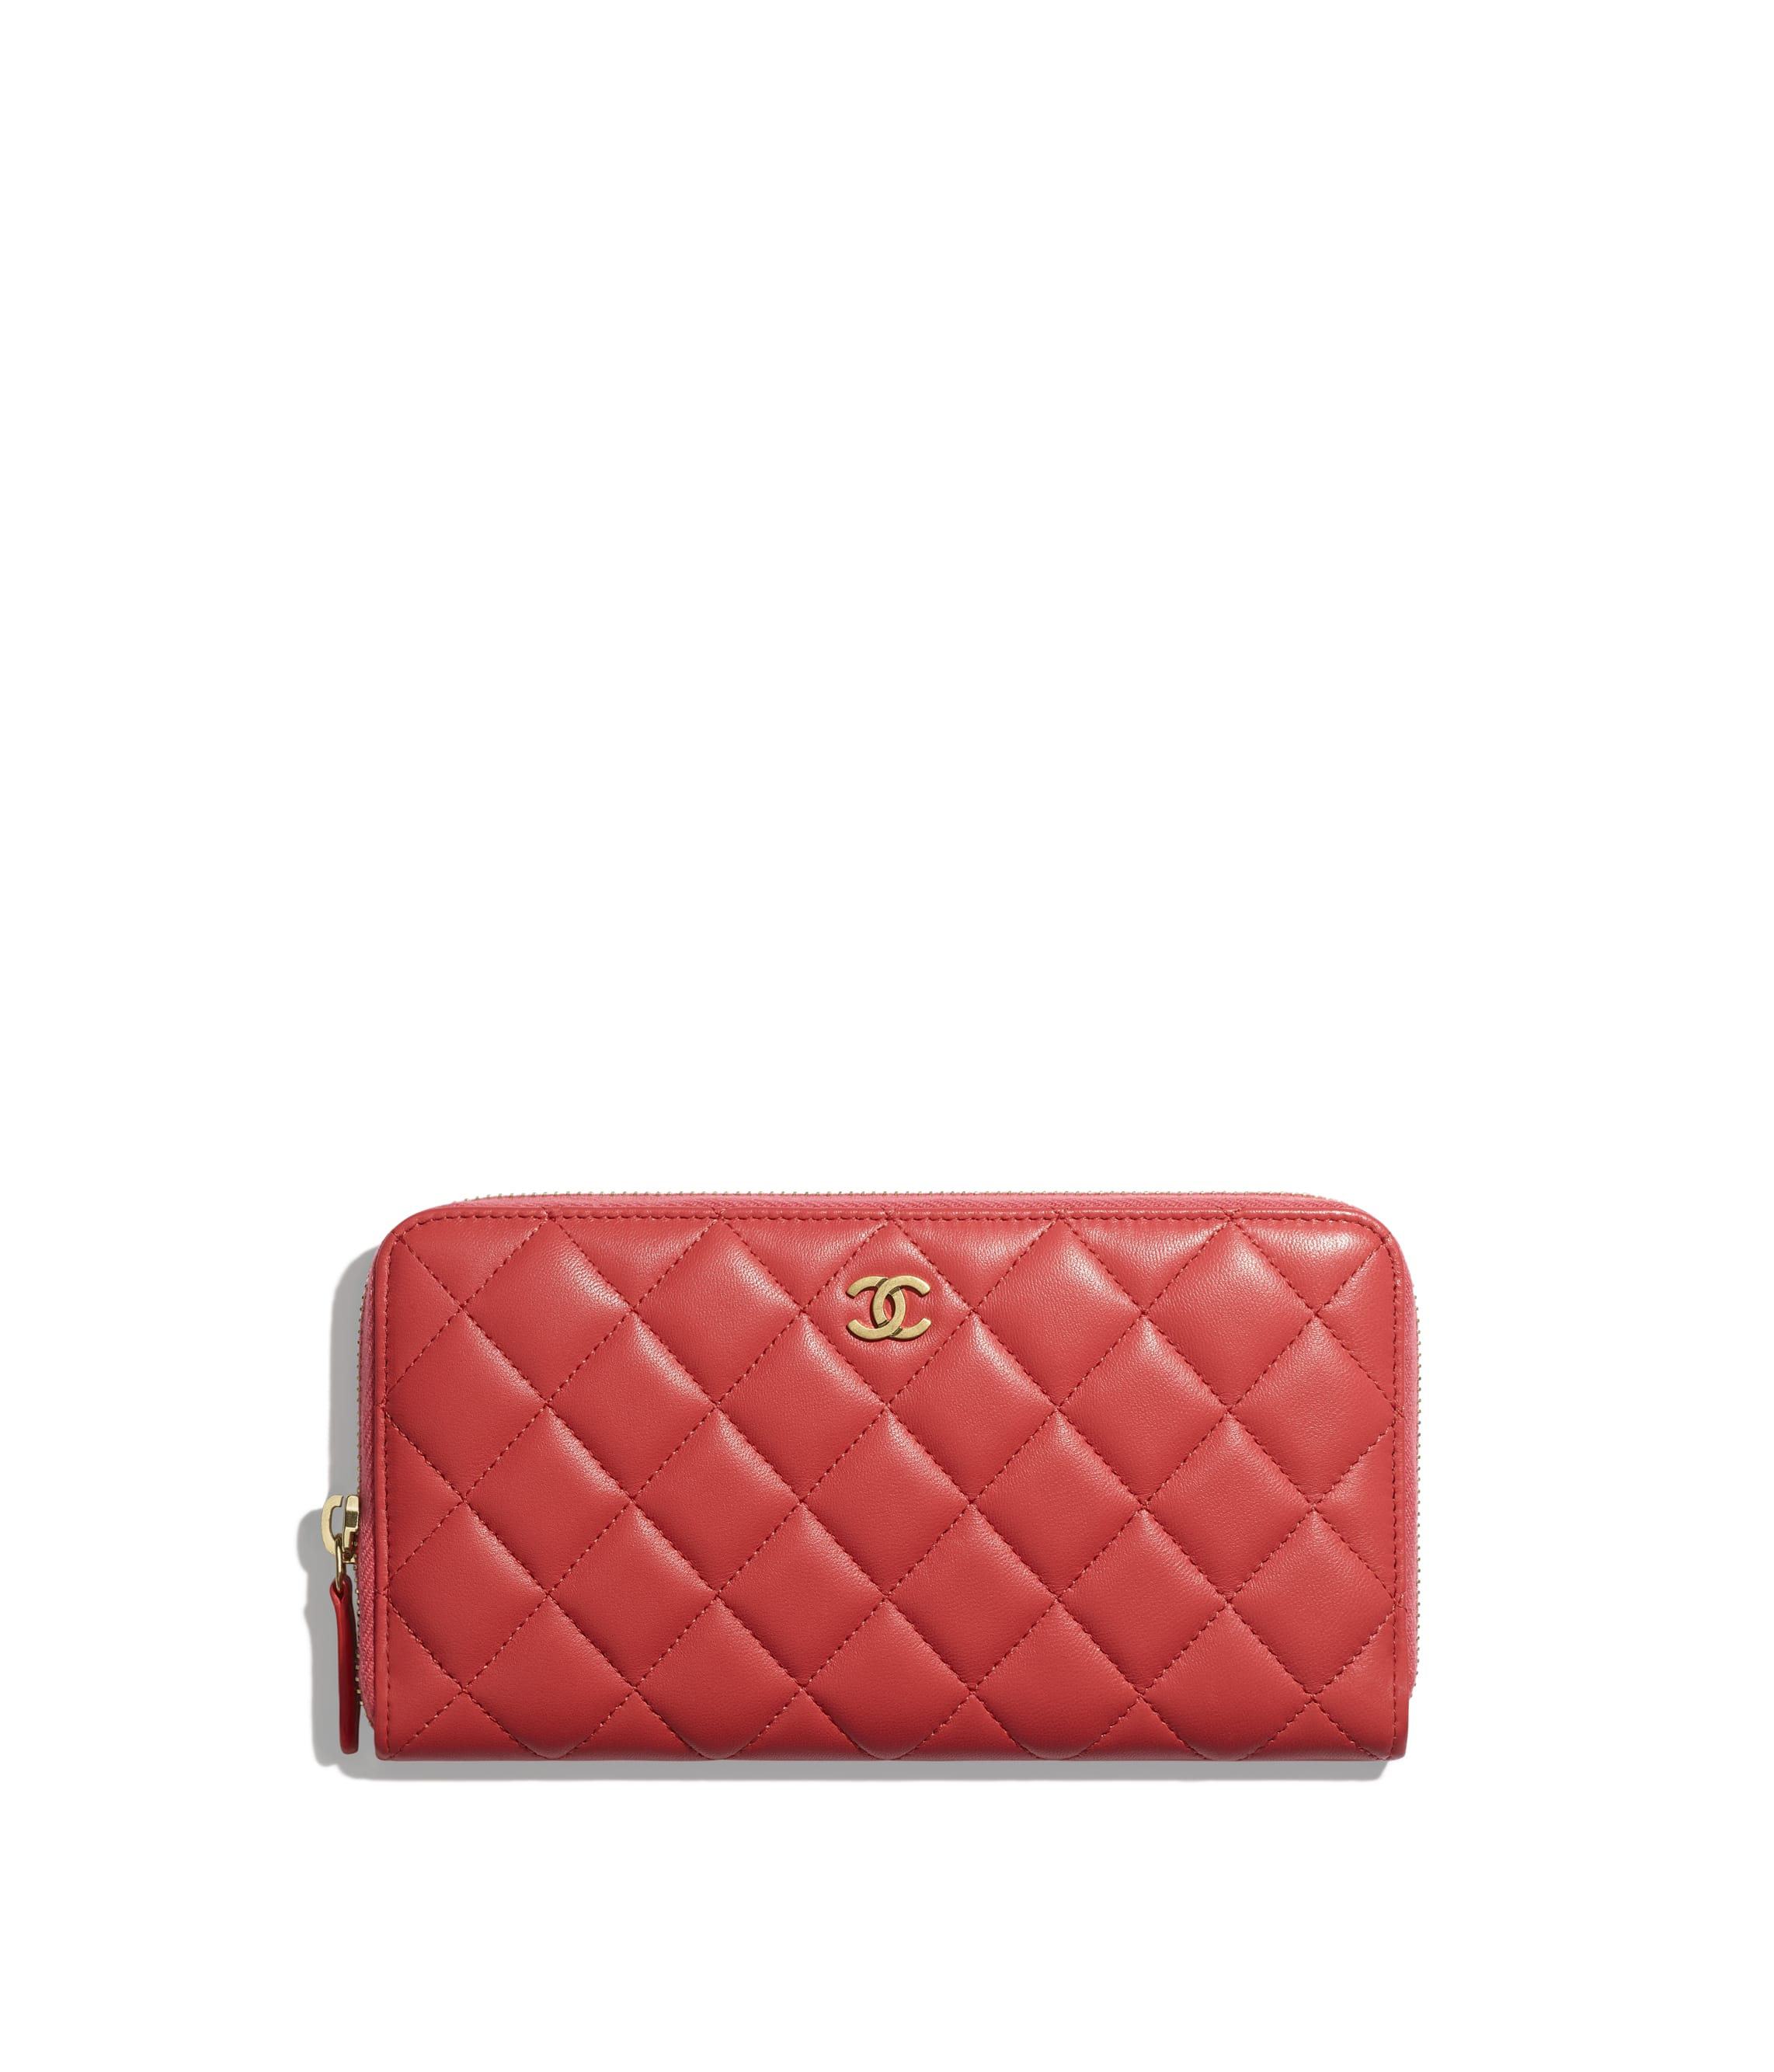 b299fa484a5b Long Wallets - Small Leather Goods - CHANEL